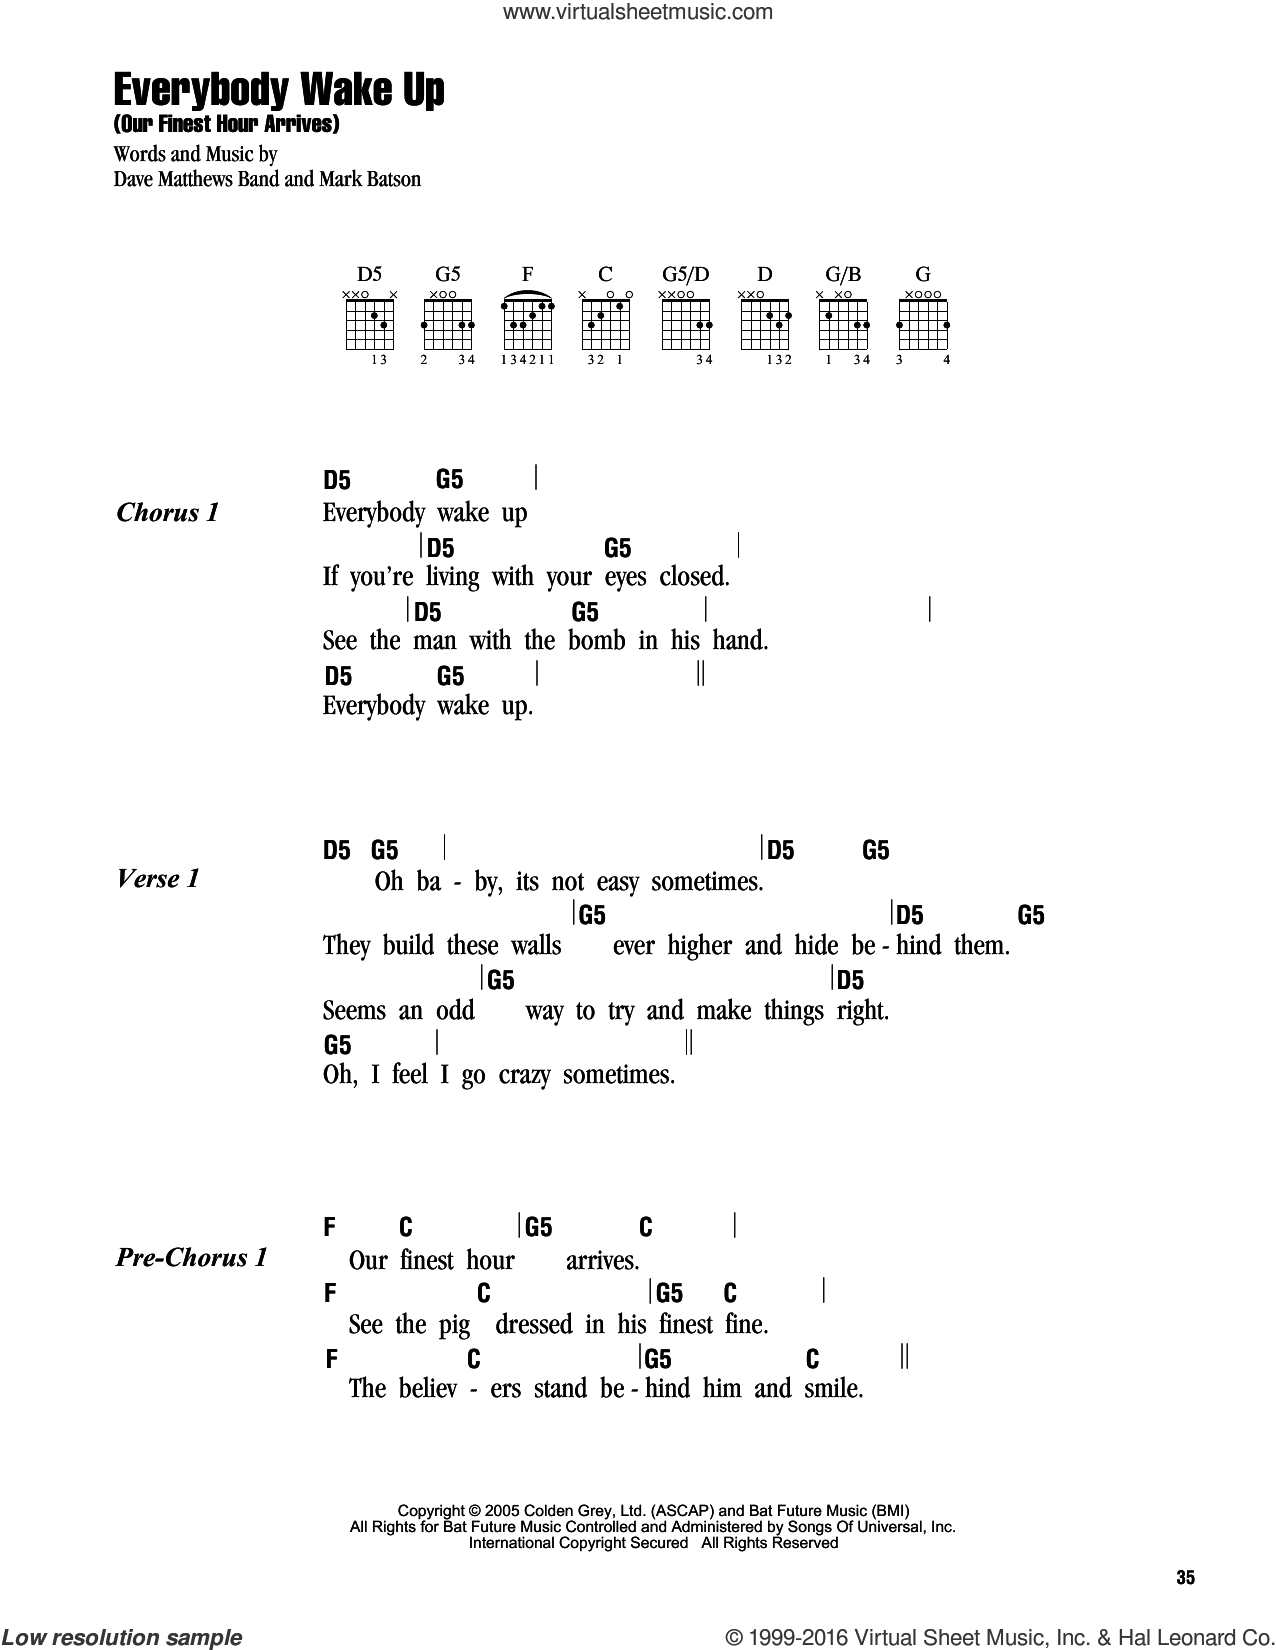 Everybody Wake Up (Our Finest Hour Arrives) sheet music for guitar (chords) by Dave Matthews Band and Mark Batson, intermediate skill level